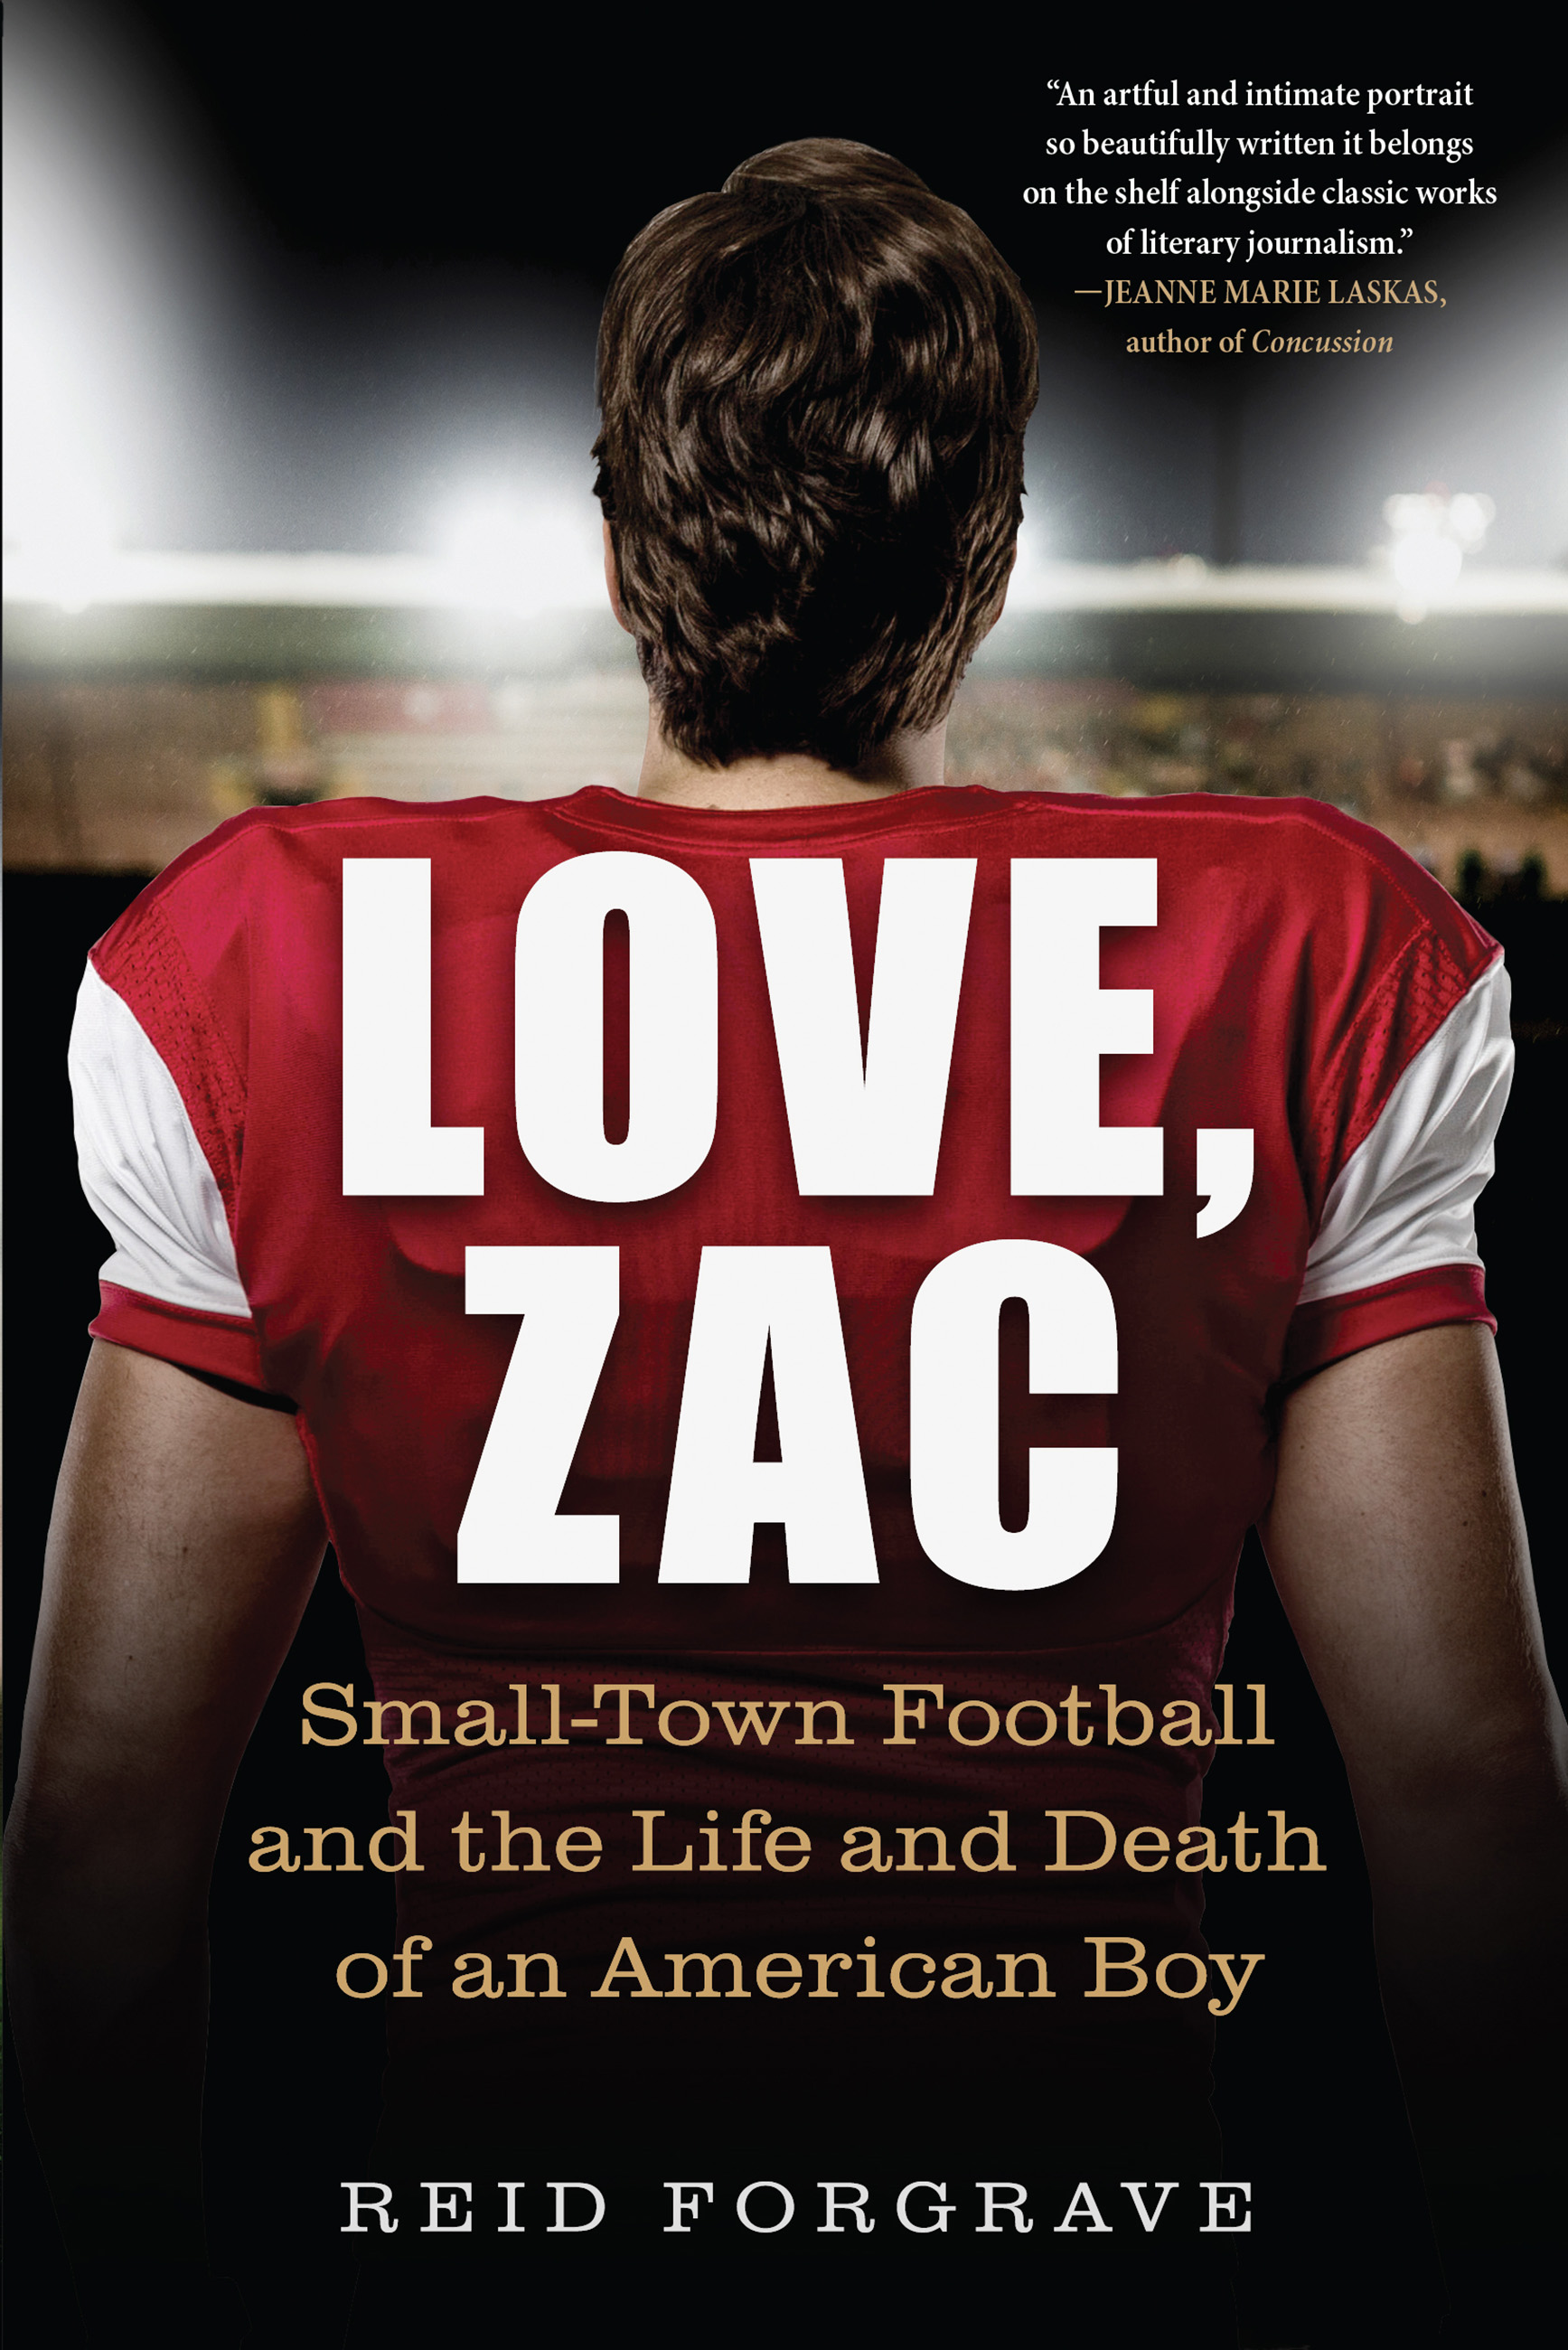 Love, Zac Small-Town Football and the Life and Death of an American Boy